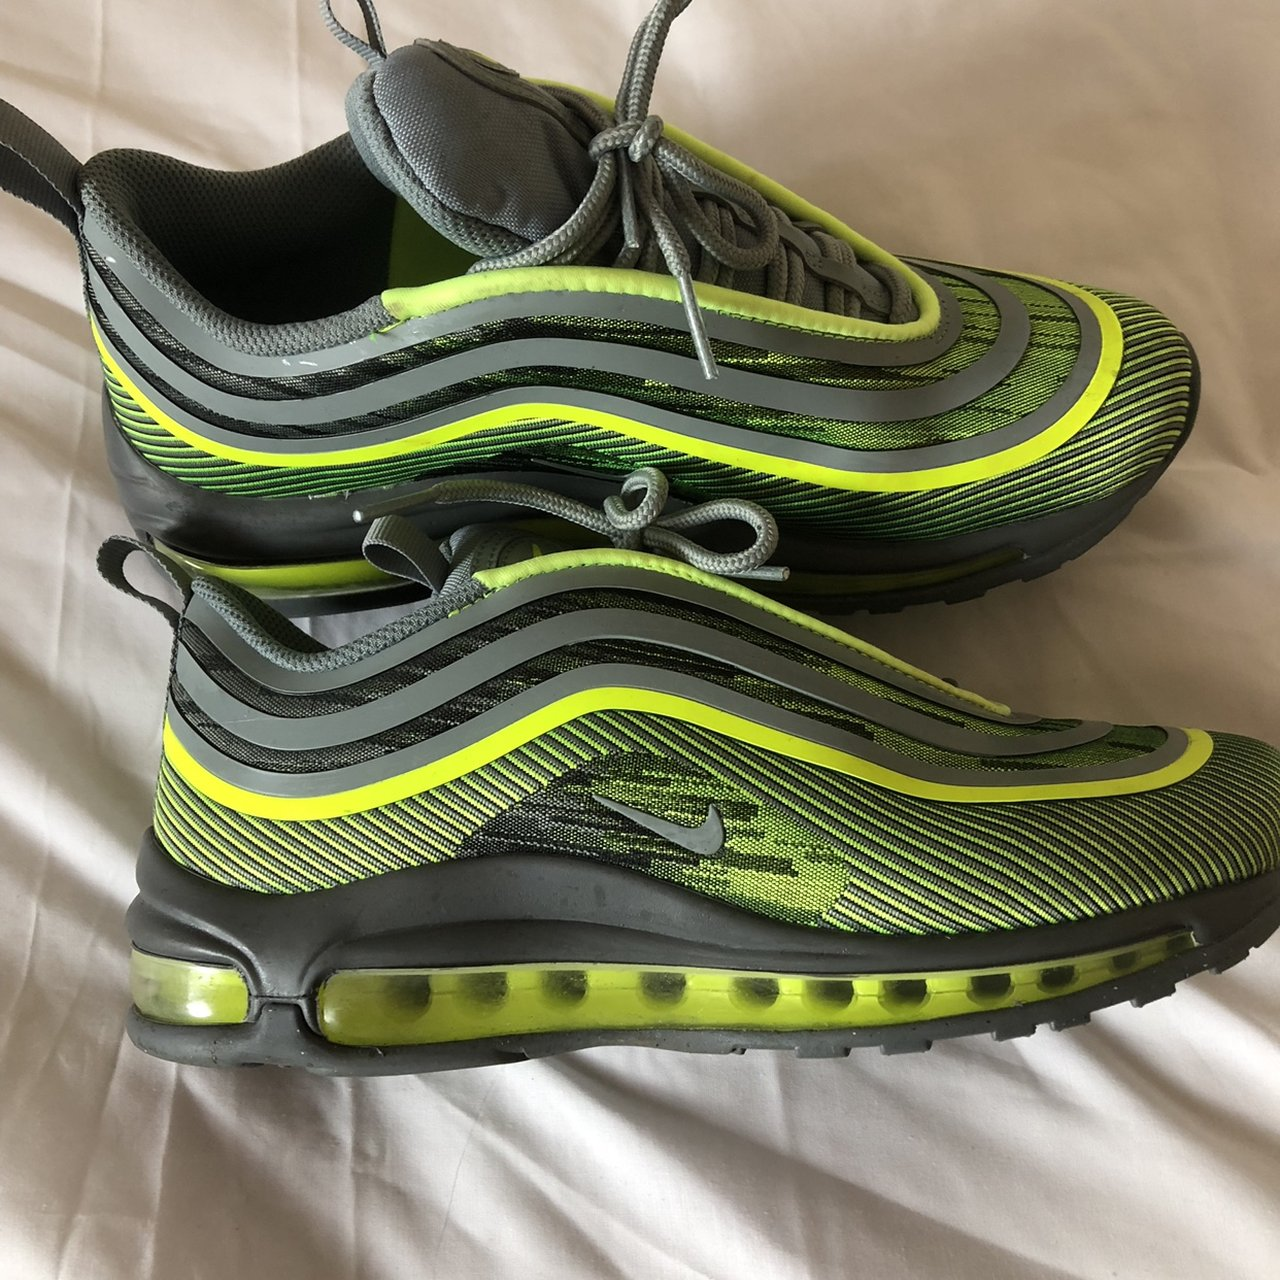 ccc67f7de2 NIKE AIR MAX 97 ULTRA GREY AND NEON GREEN SIZE UK 5 - Depop